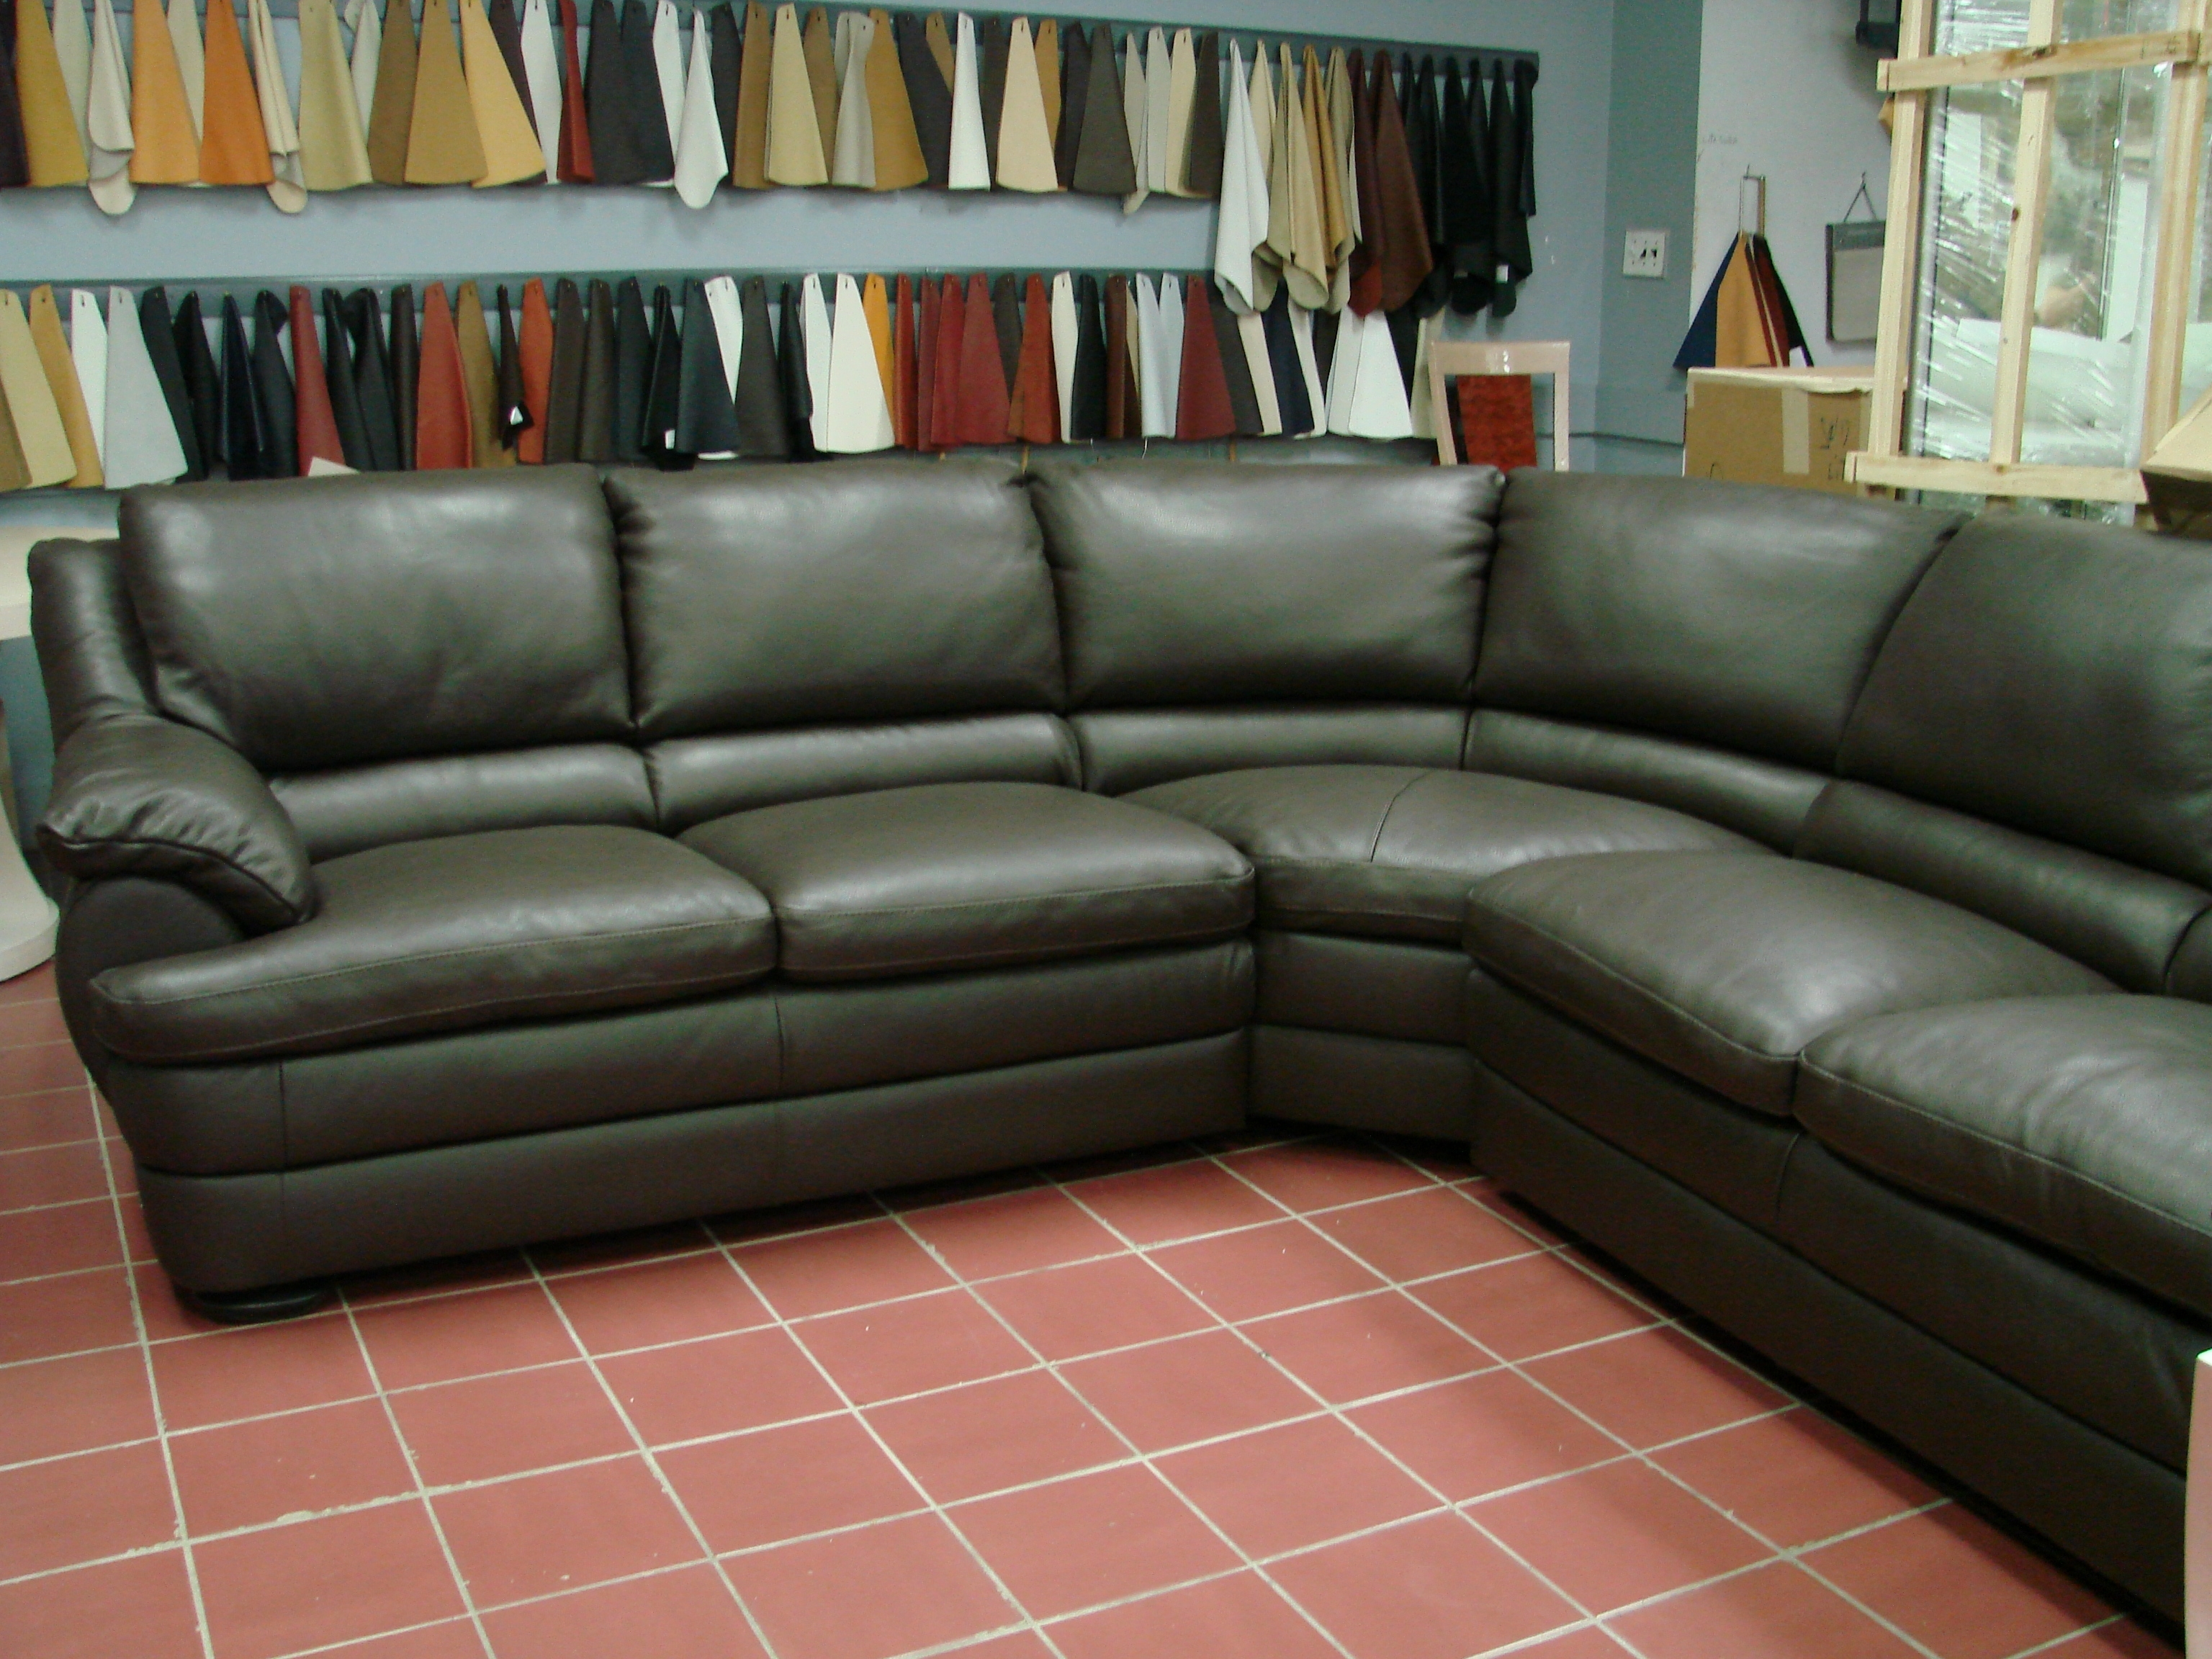 Leather Sectional Sofa With Recliners Sofas Ottawa For Sale Couch Inside Ottawa Sectional Sofas (Image 4 of 10)